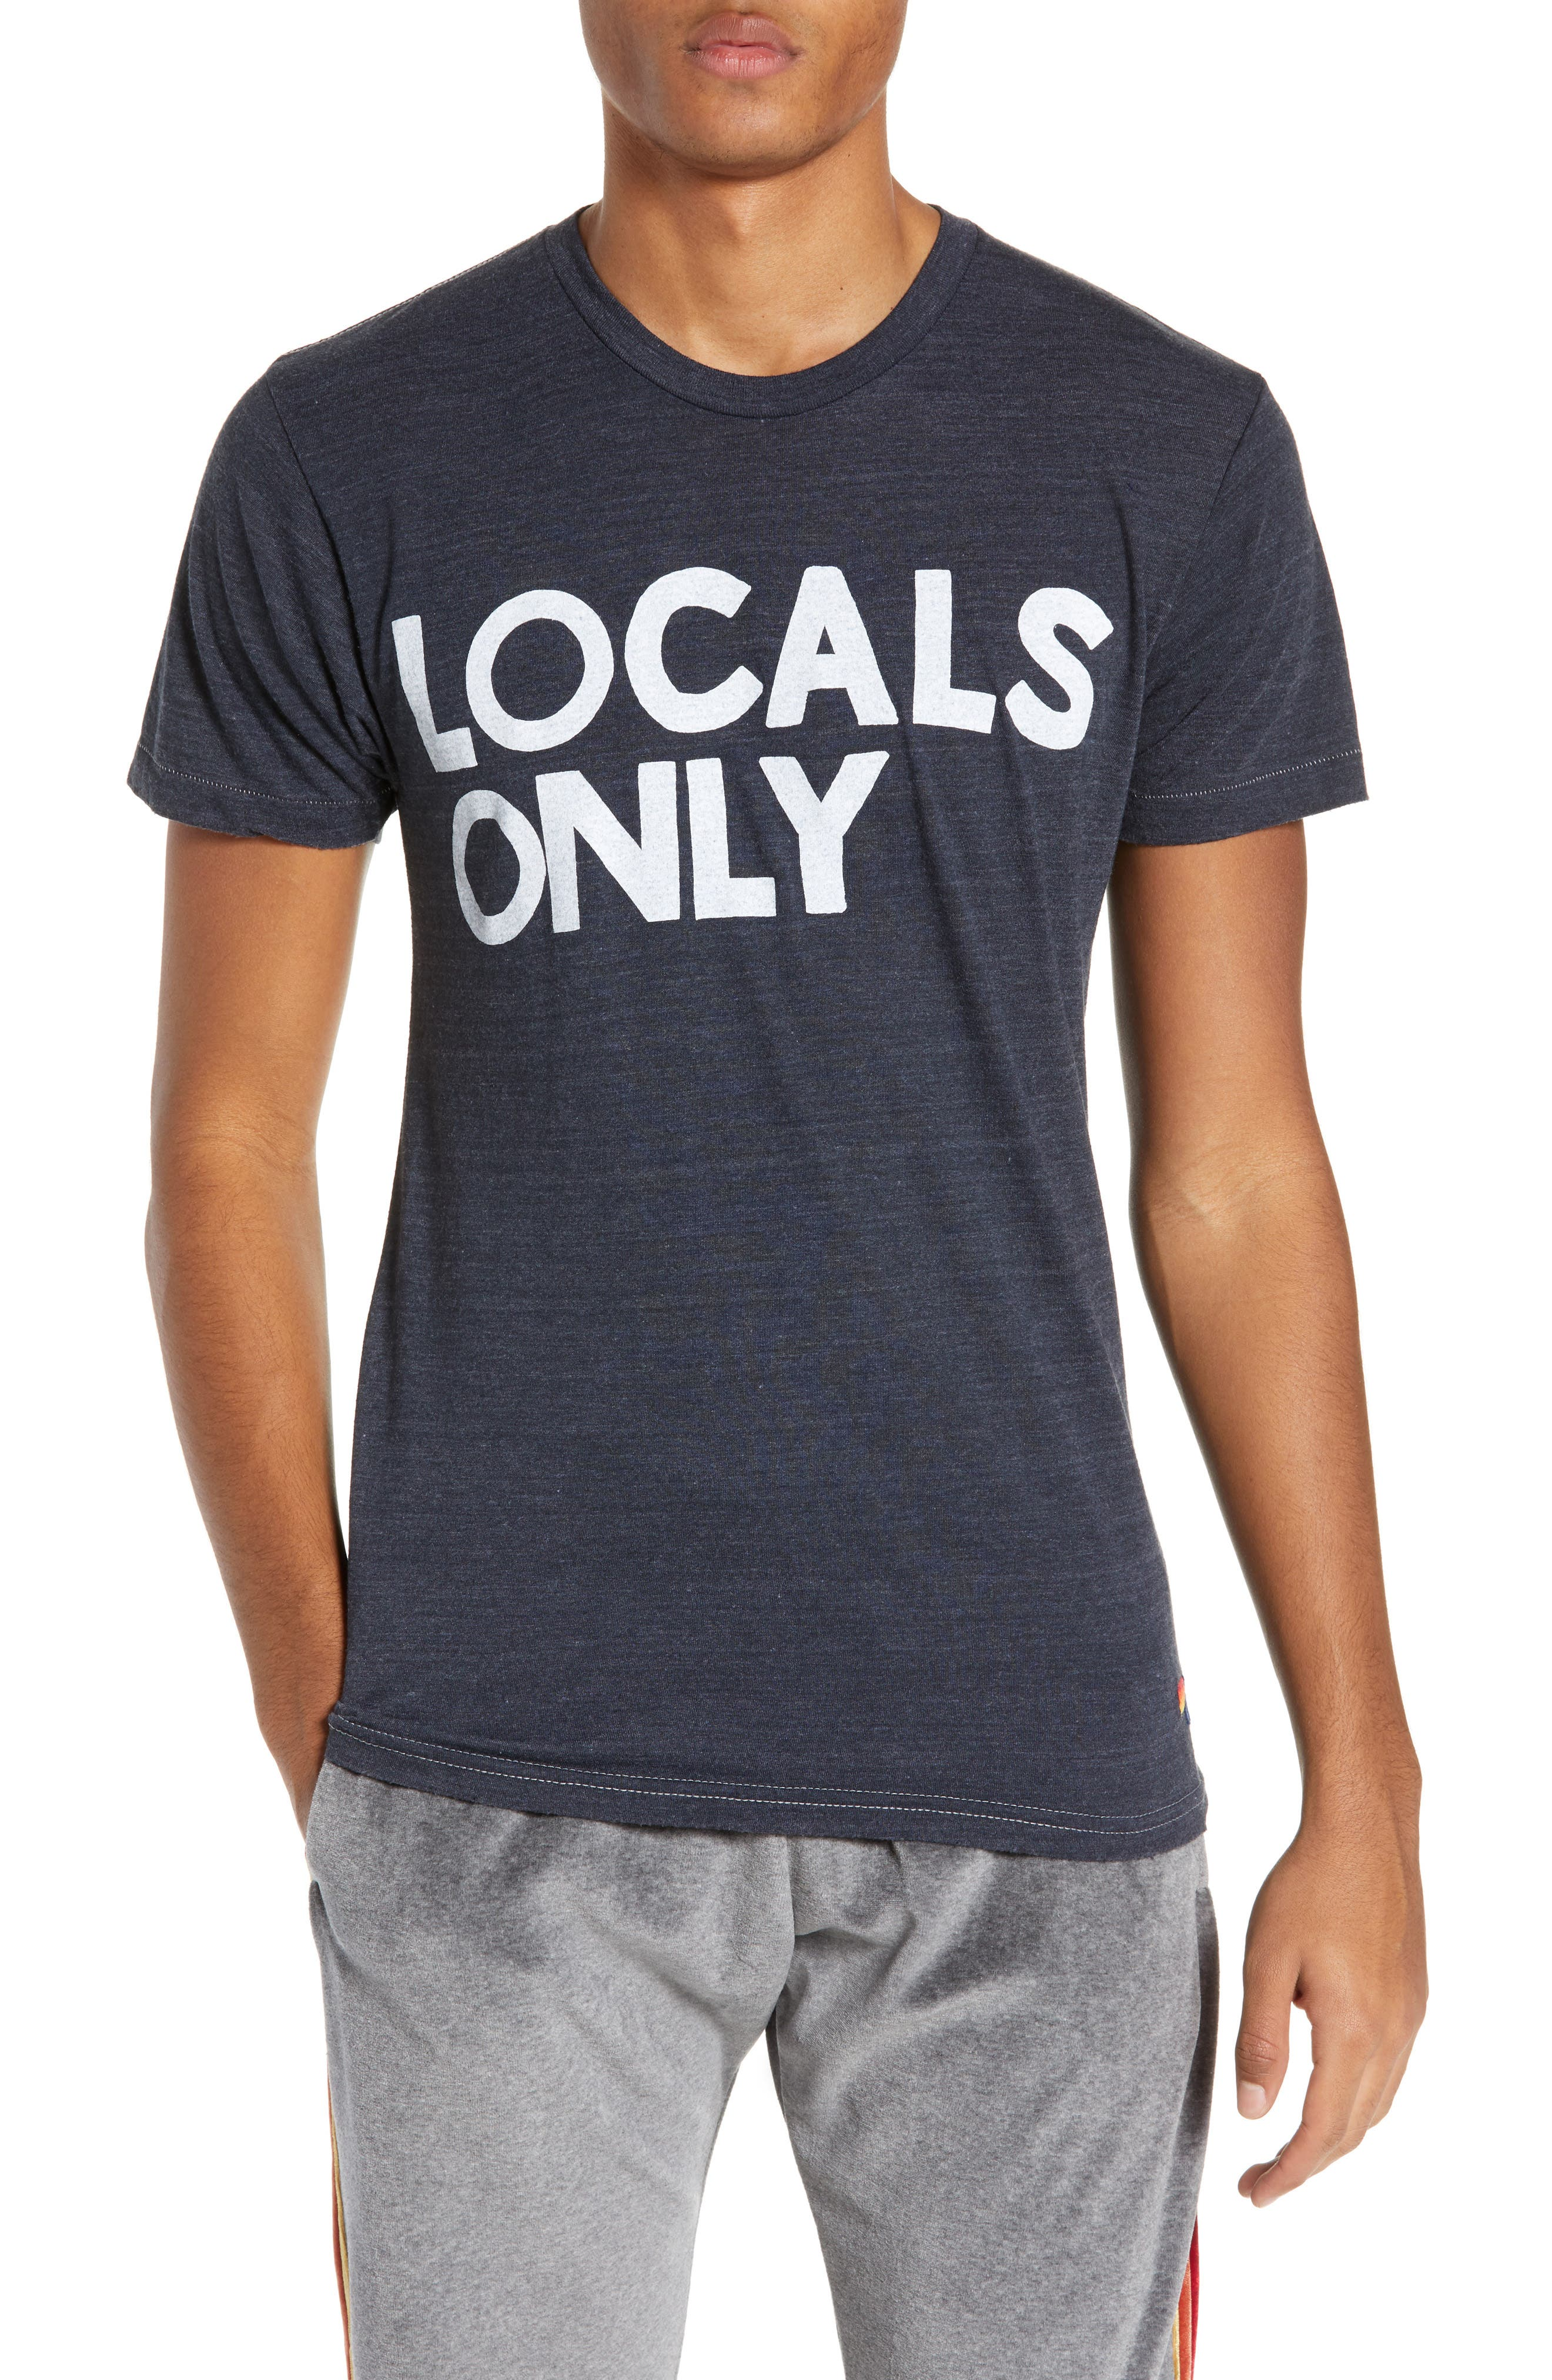 Locals Only Graphic T-Shirt